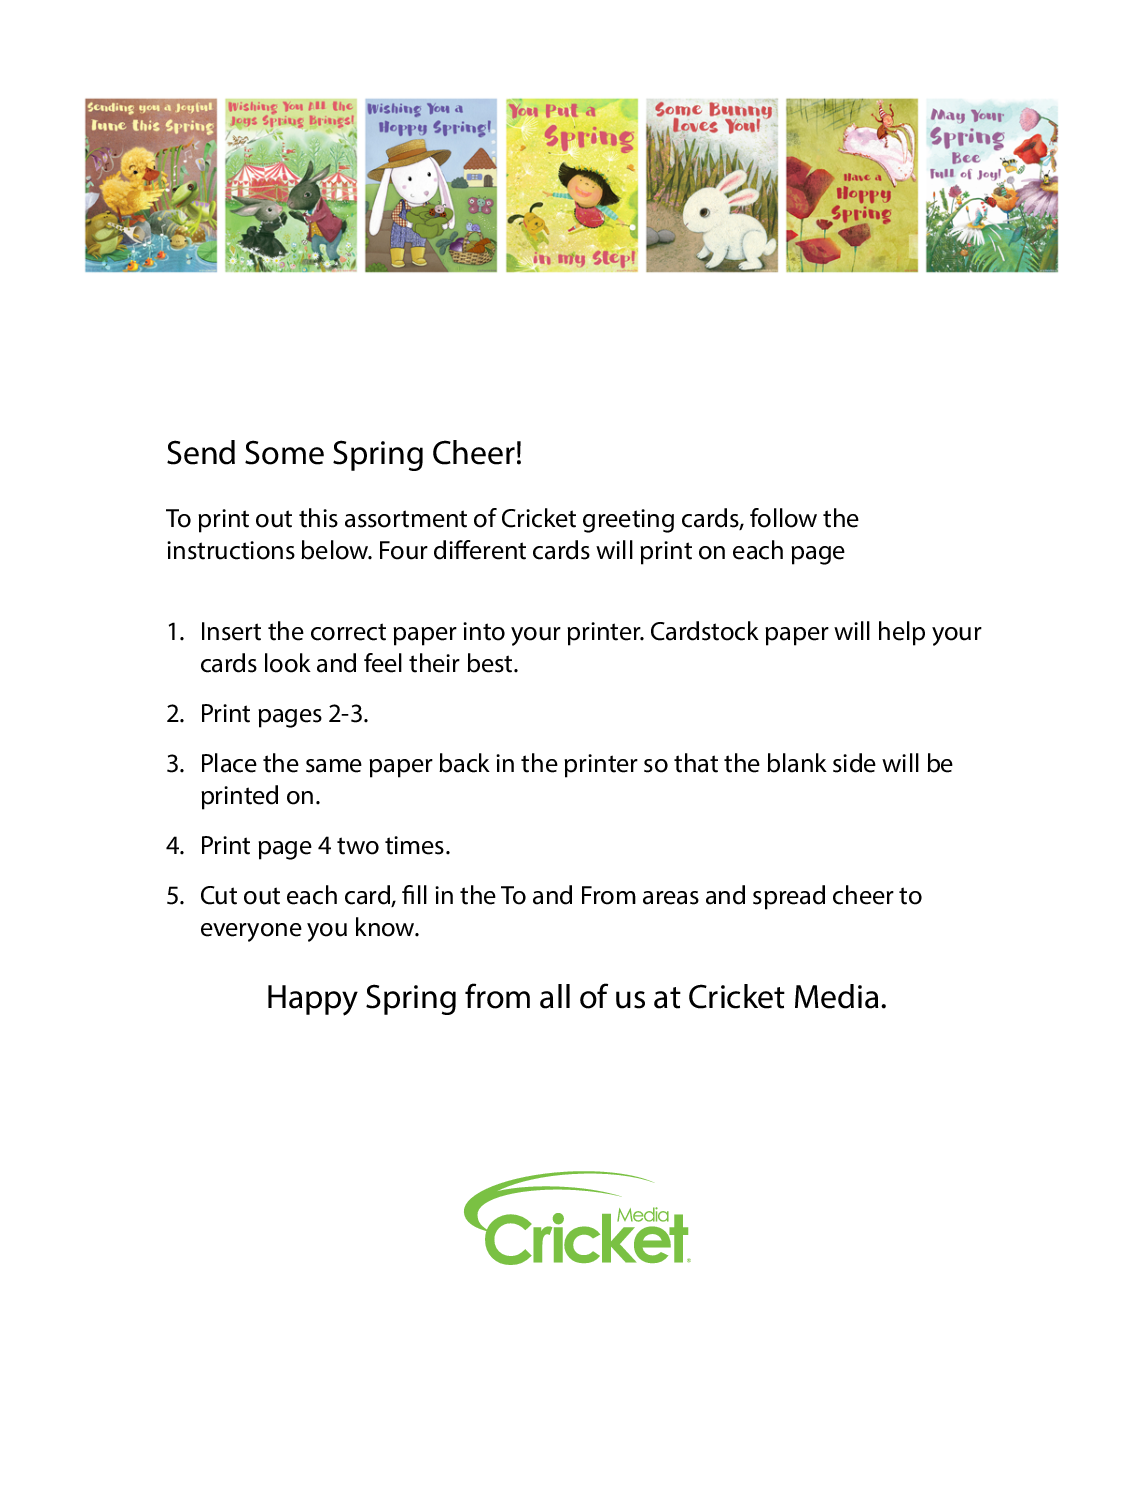 Send Some Spring Cheer To Print Out This Assortment Of Cricket